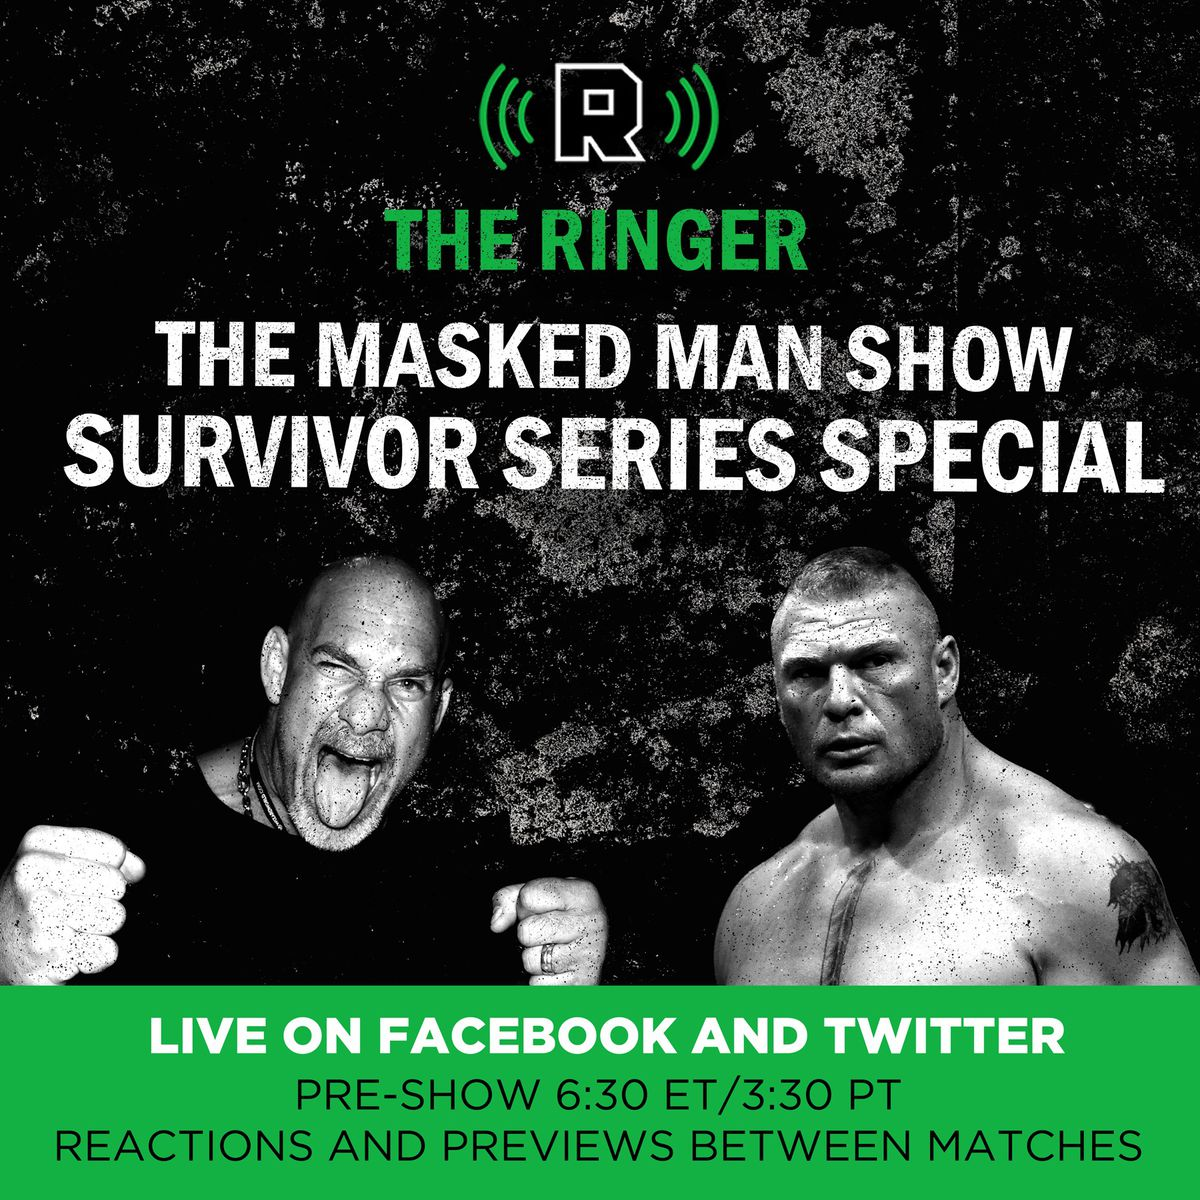 """Prepare for 'Survivor Series' with a special, live 'The Masked Man Show' with David Shoemaker before the event begins. Watch on <a href=""""http://facebook.com/ringer"""">Facebook</a> or<a href=""""http://twitter.com/ringer"""">Twitter</a>."""